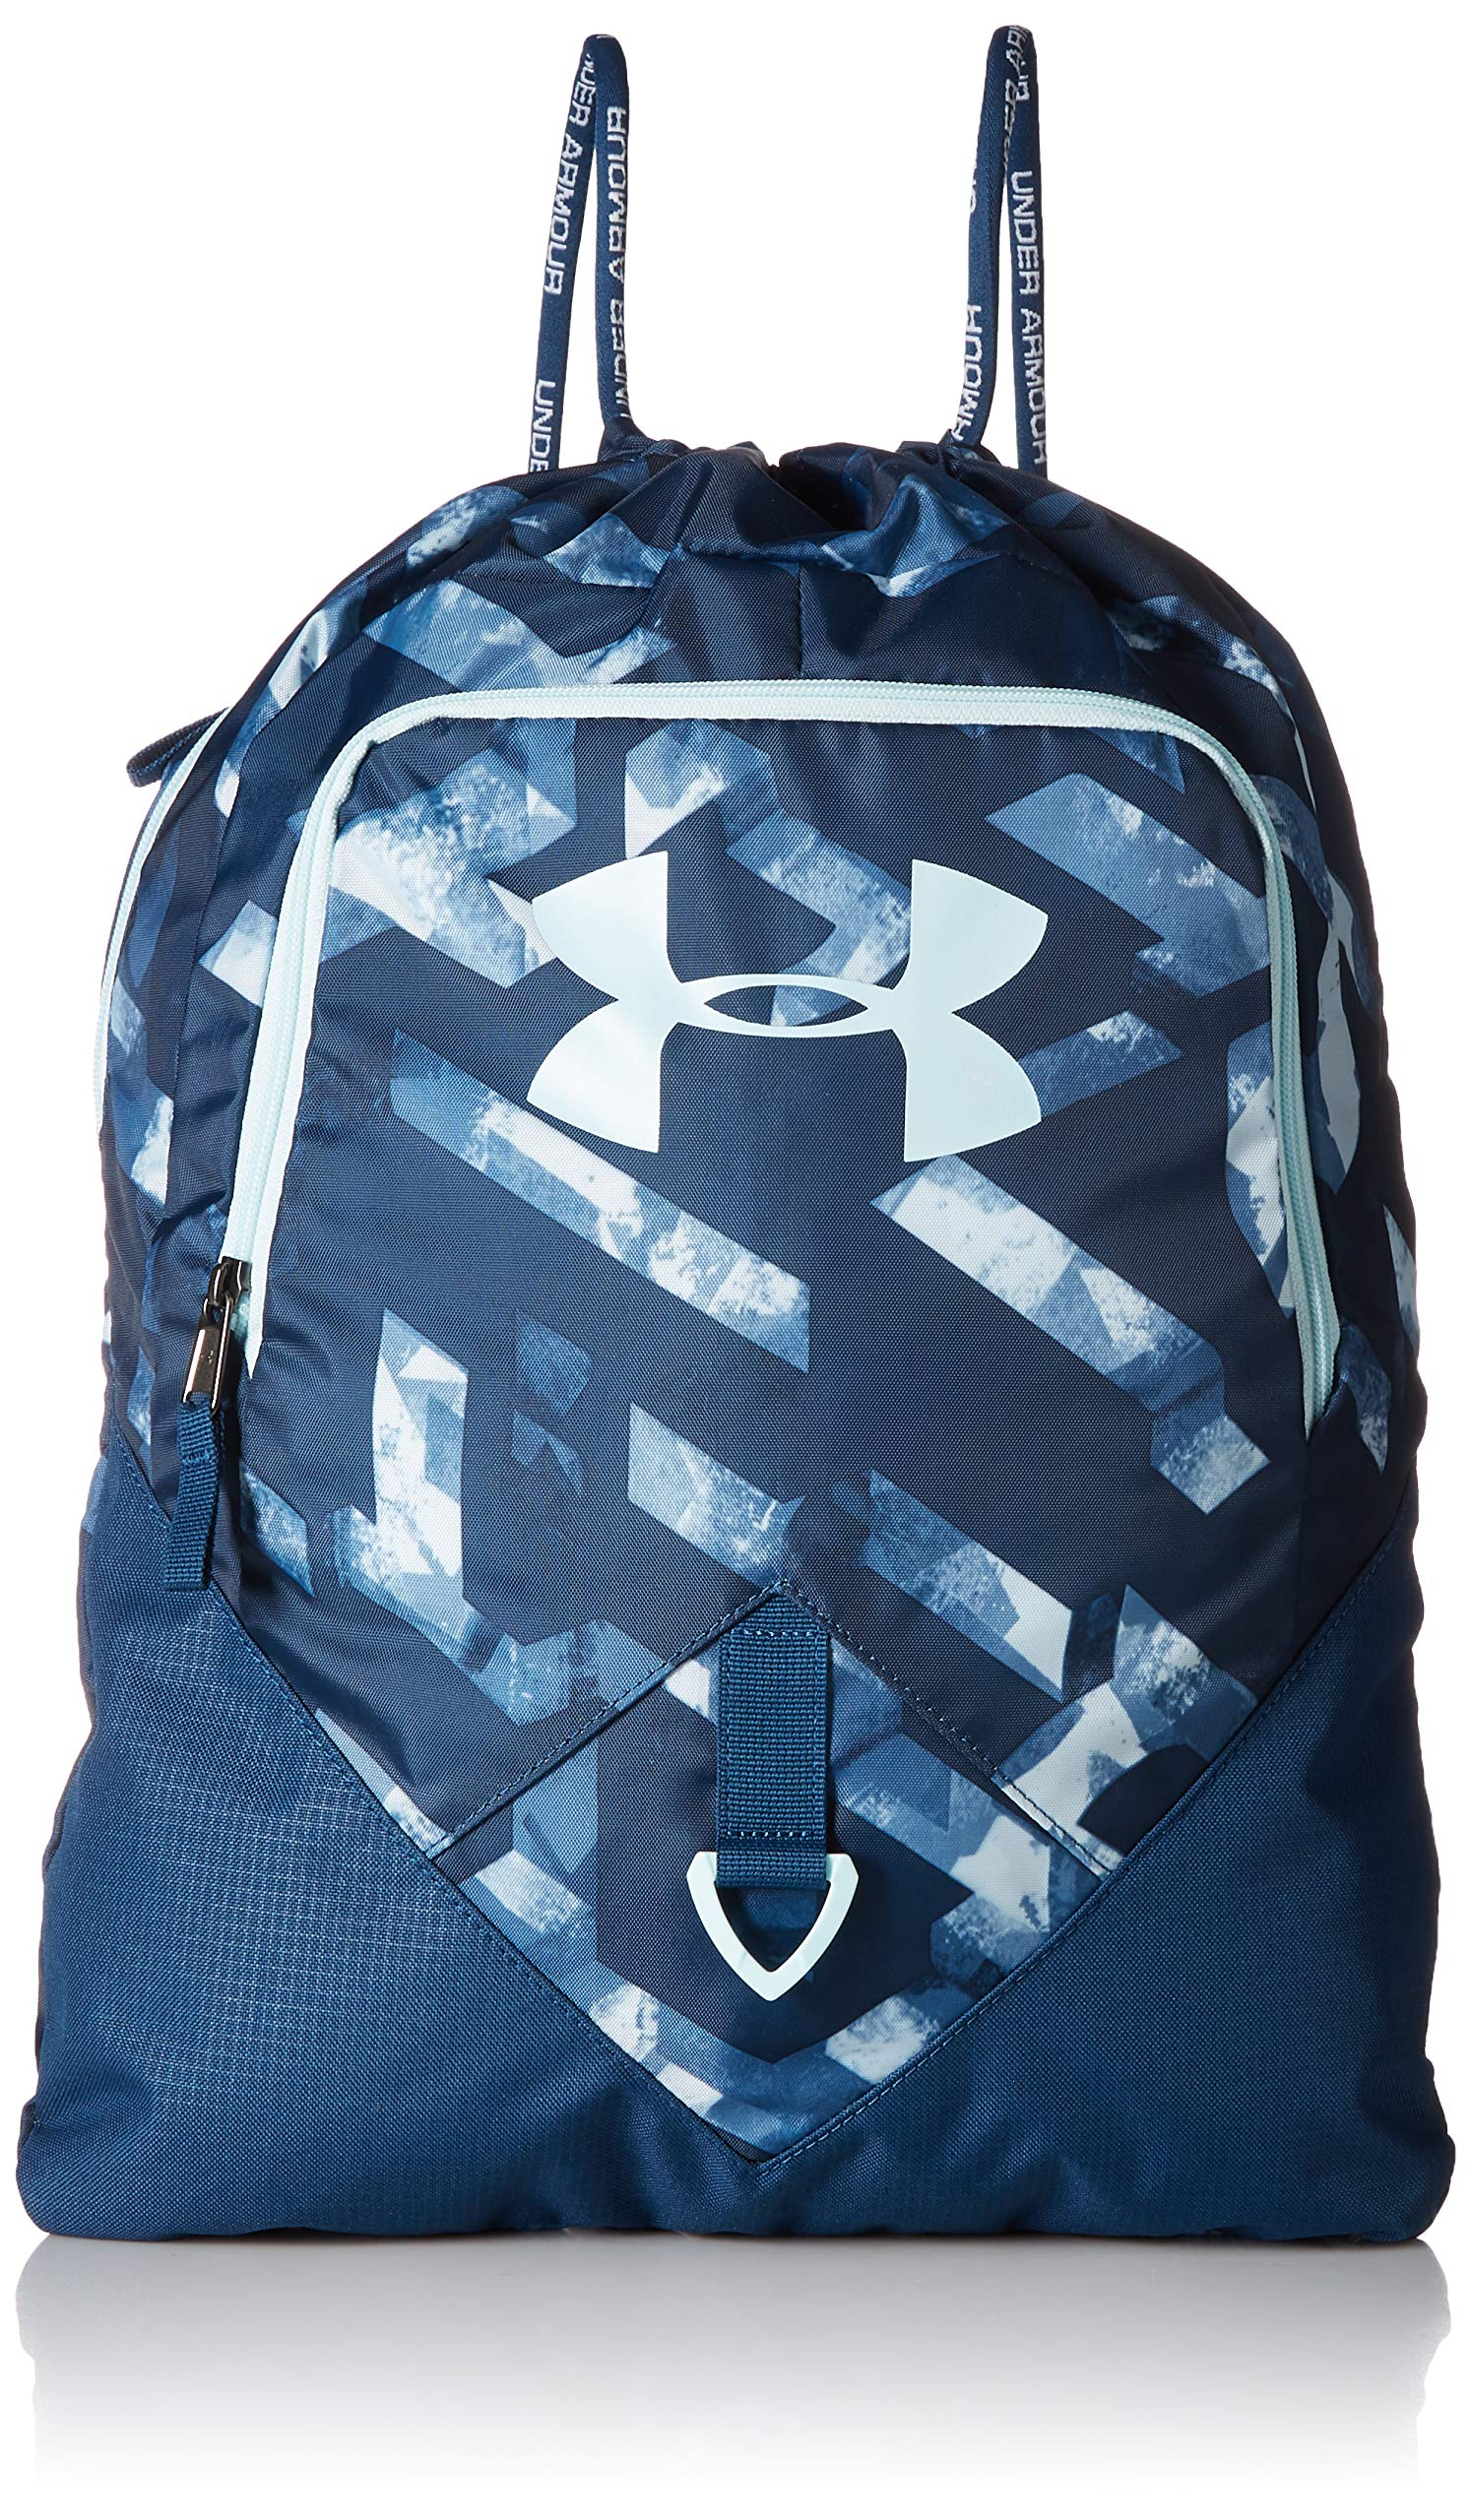 Under Armour Undeniable Sackpack, Petrol Blue//Fuse Teal, One Size Fits All